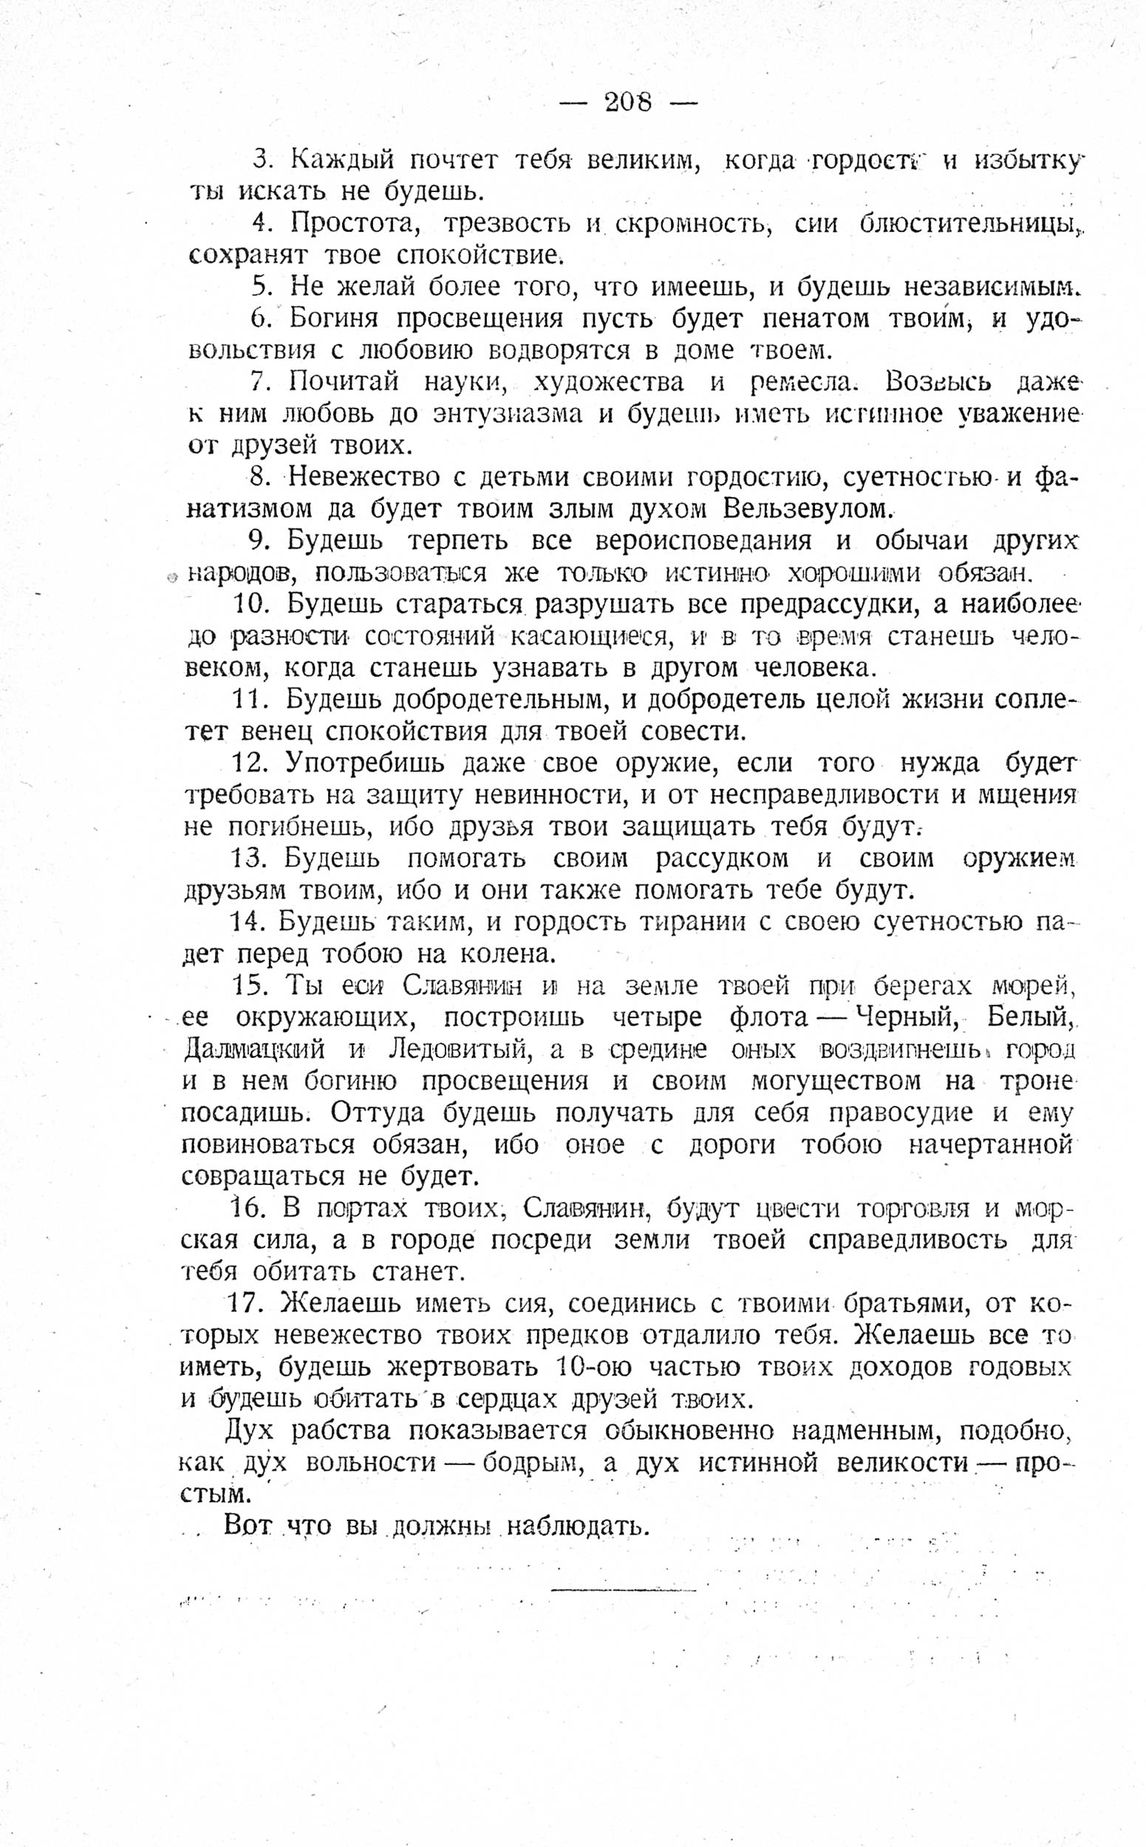 http://elib.shpl.ru/pages/625791/zooms/7